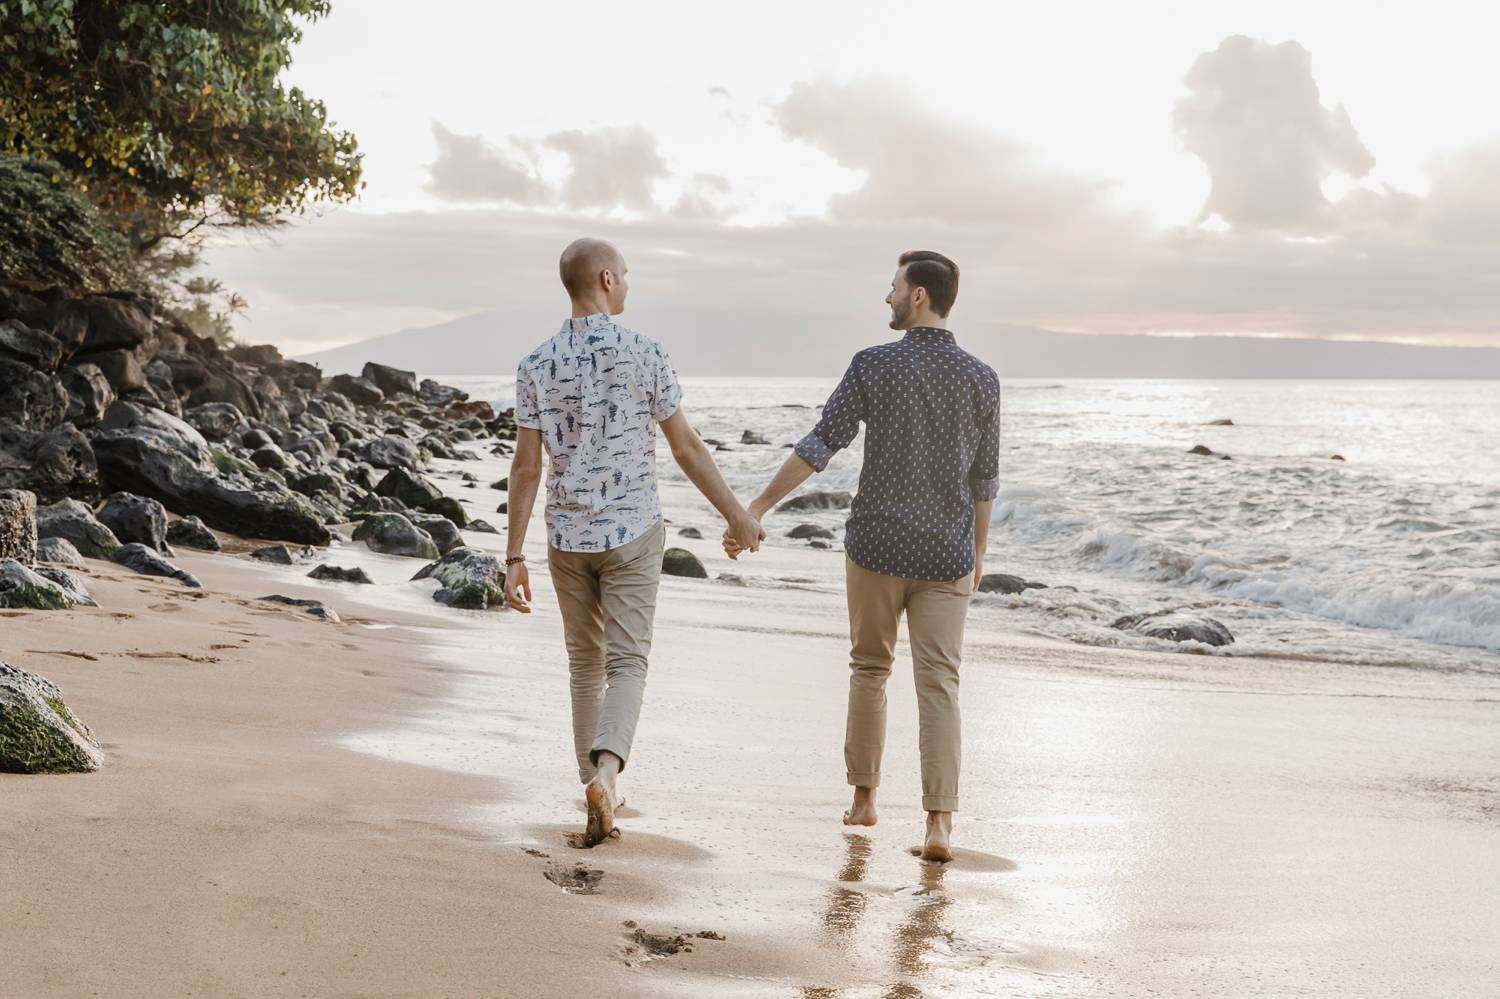 Two men stroll hand-in-hand on the beach at sunset.